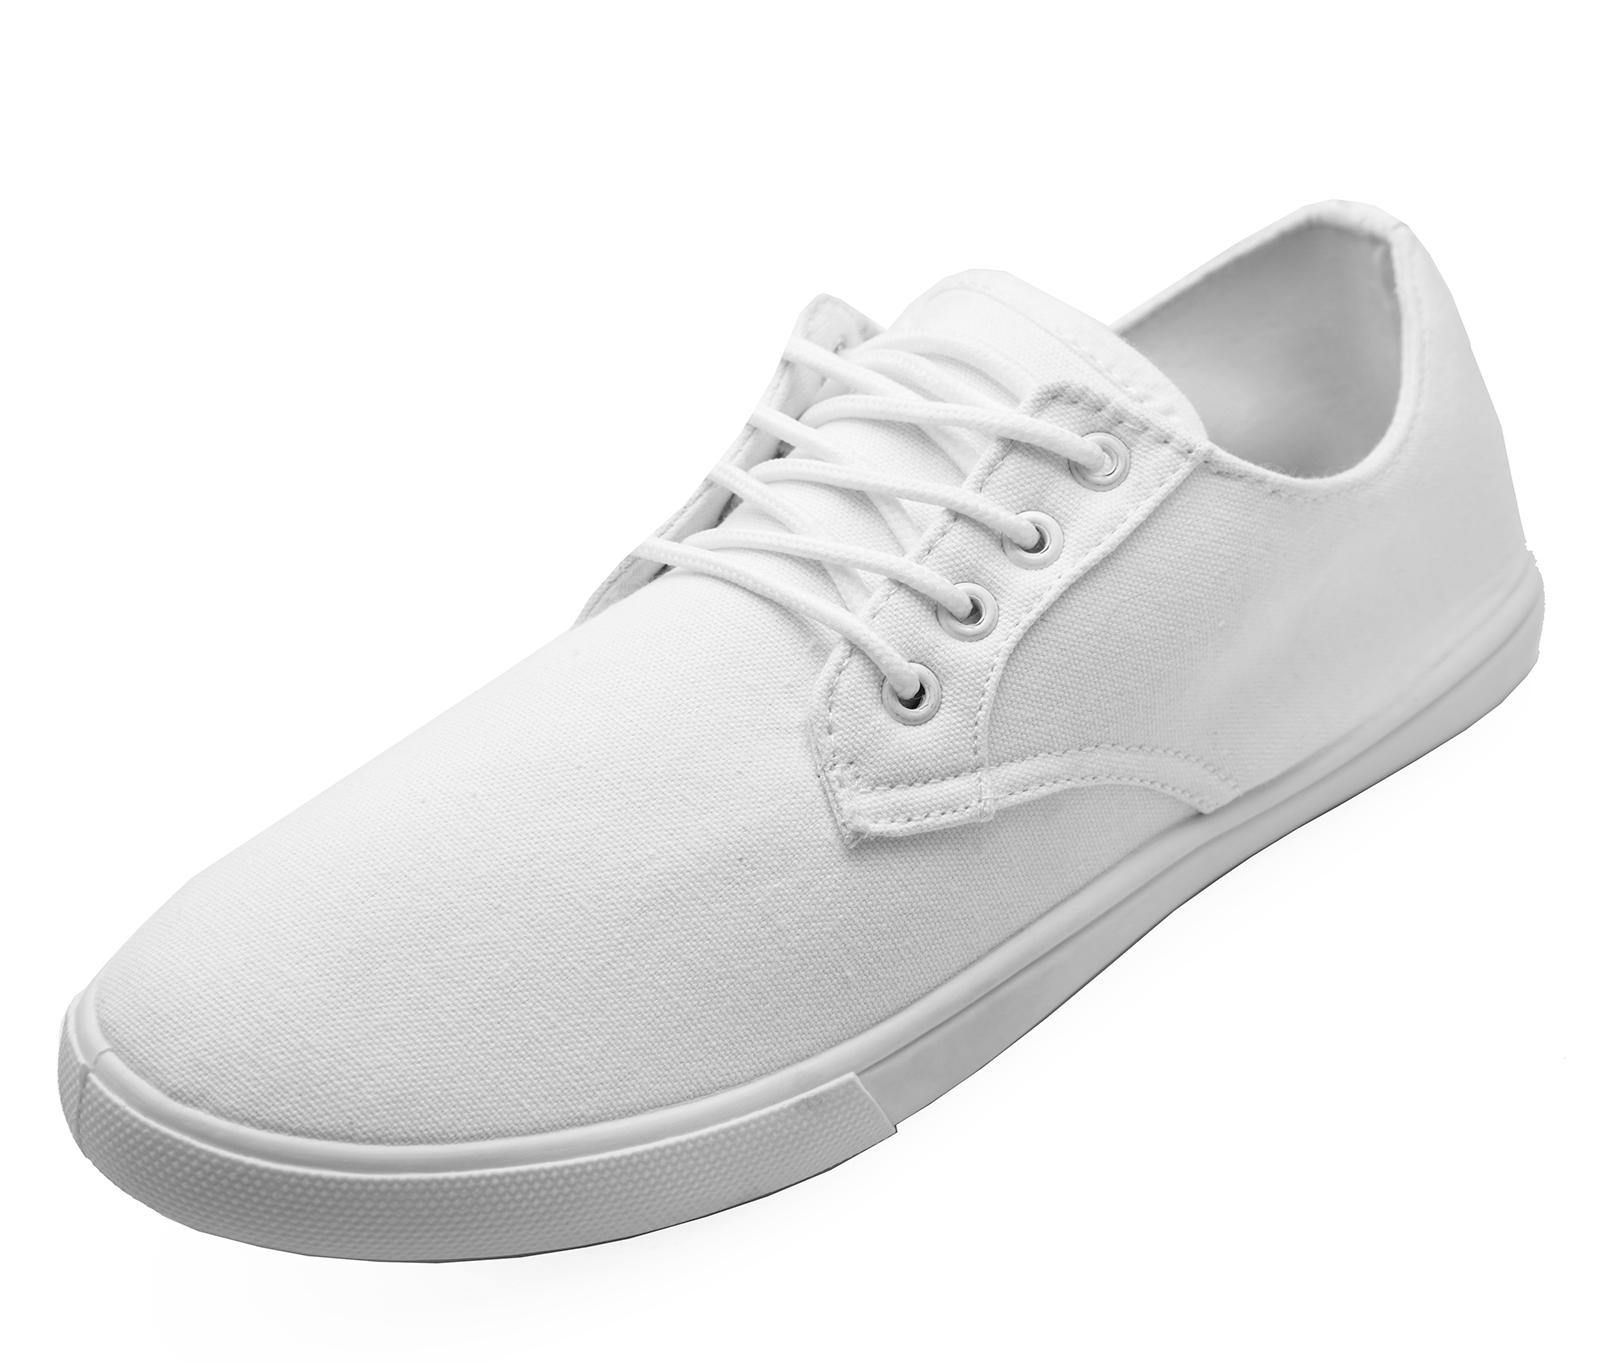 MENS LACE-UP WHITE CANVAS FLAT TRAINER